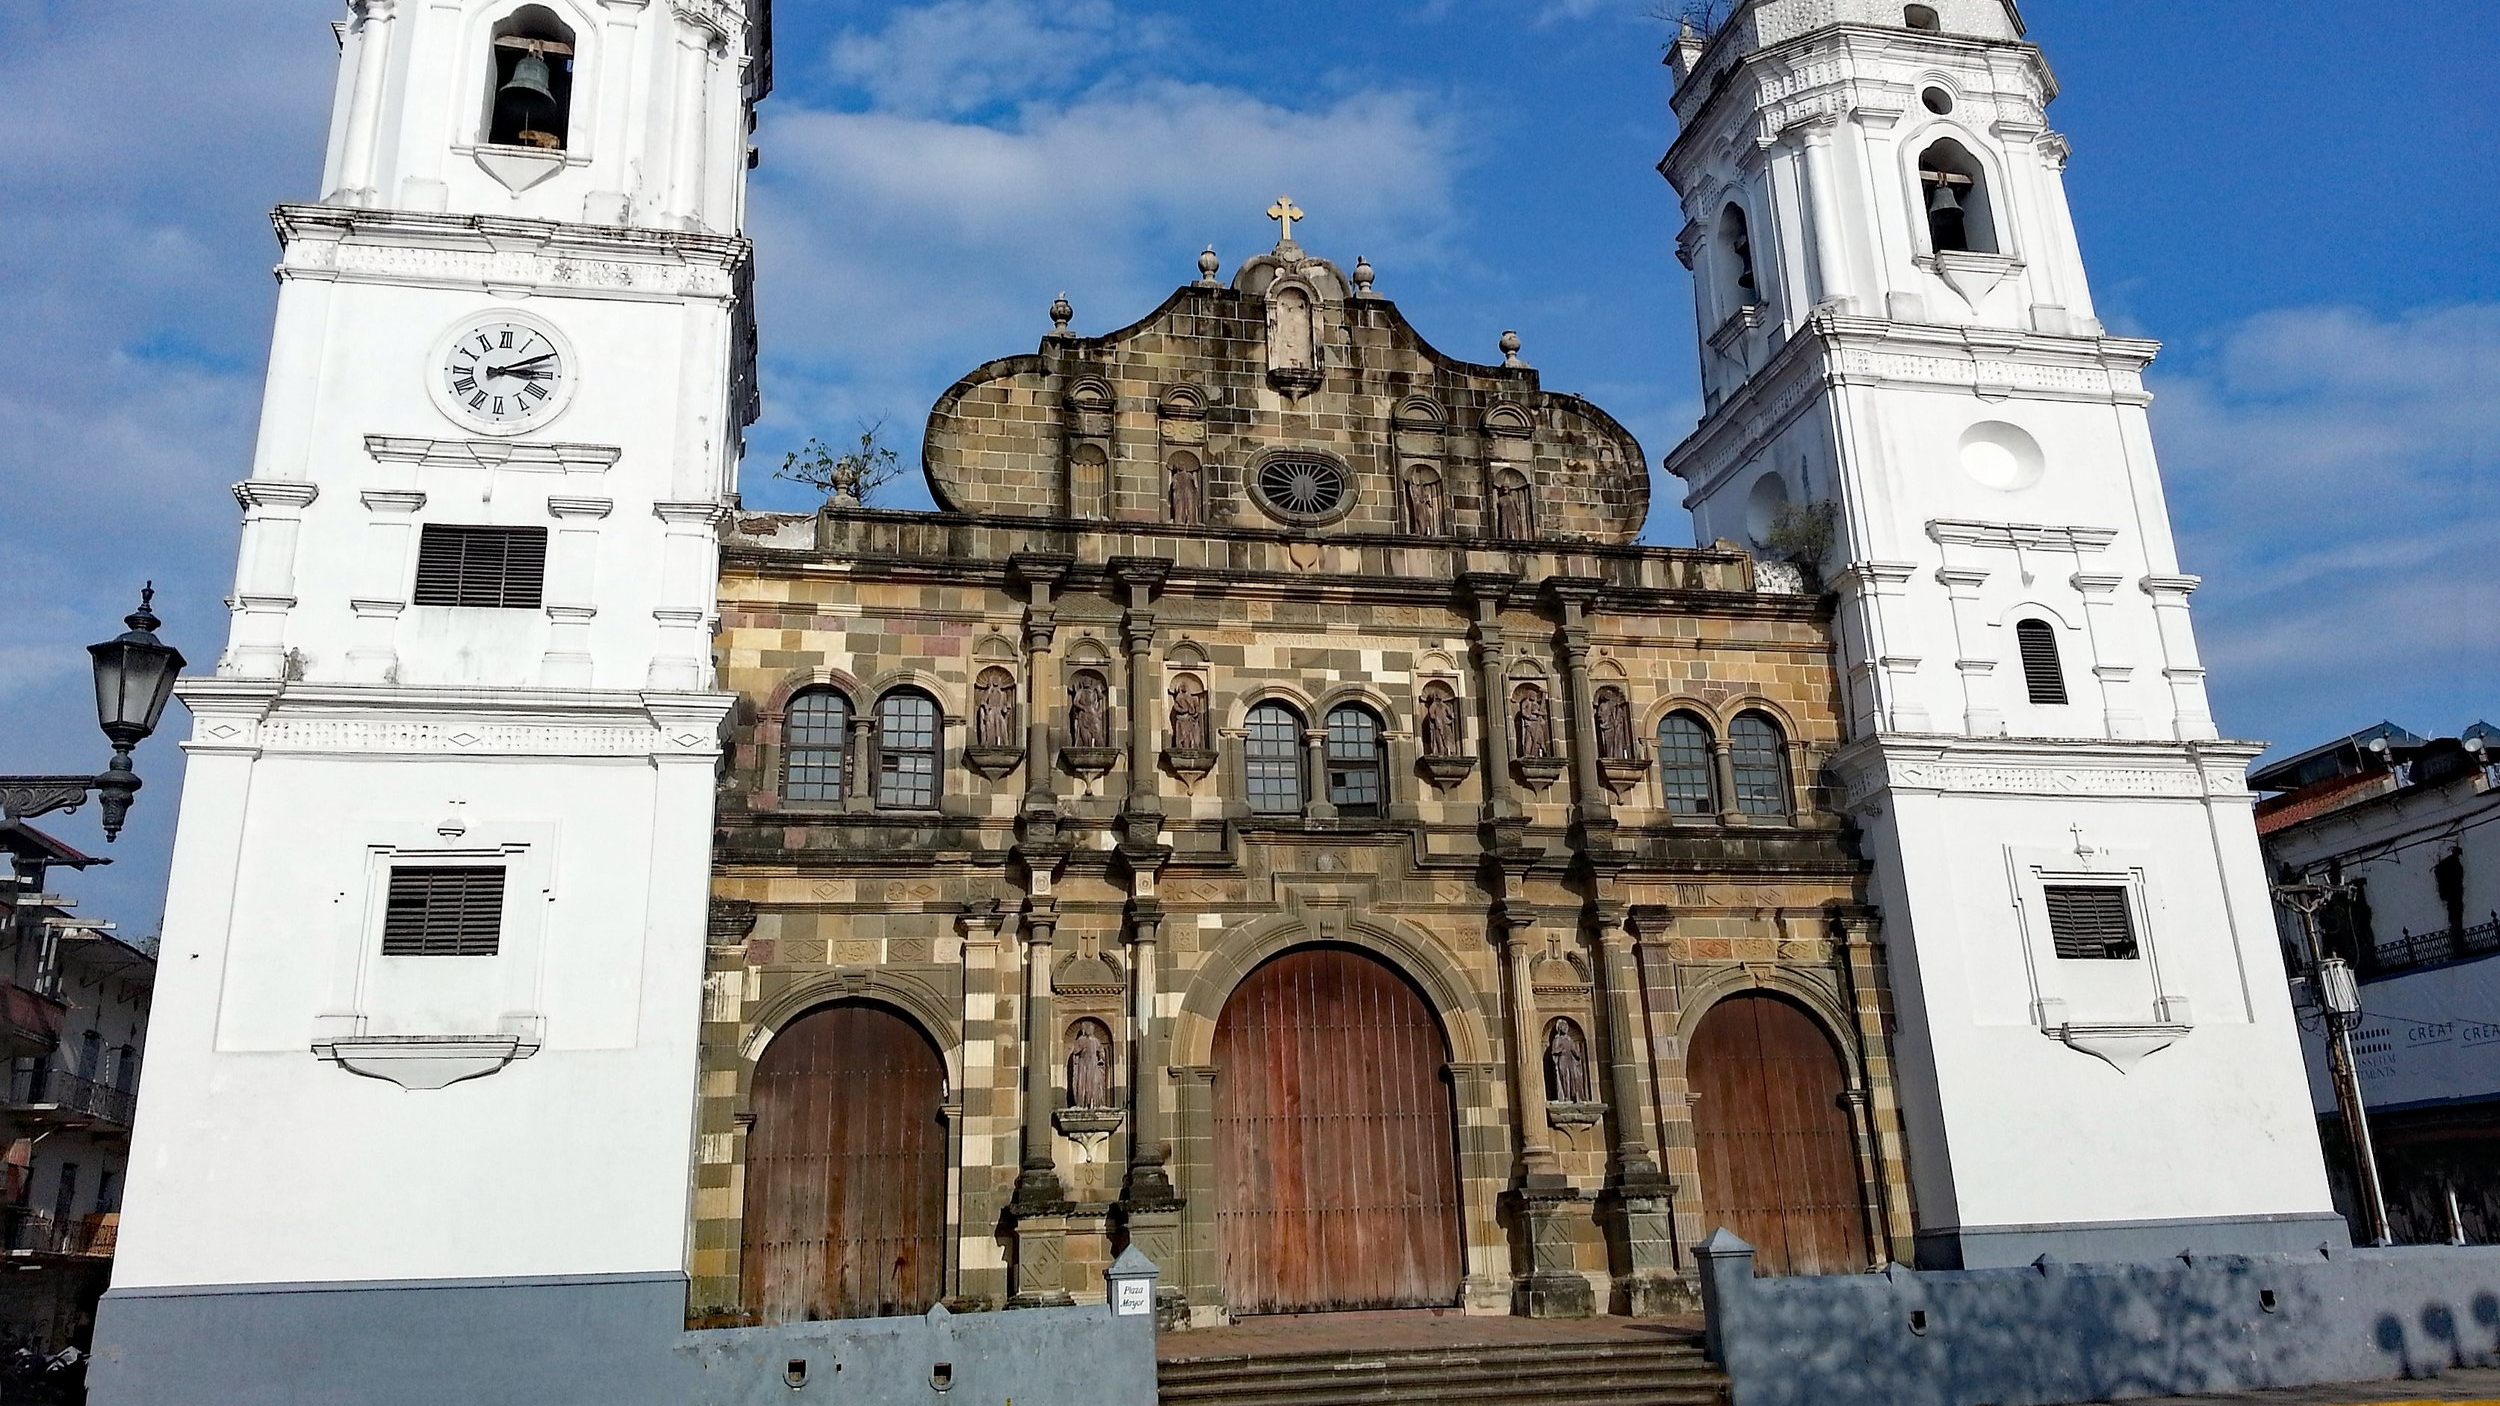 Explore Catholic Panamáa - Discover the several pilgrimage sites throughout the Old City and learn about the history and vibrancy of the Church in Panamáa.